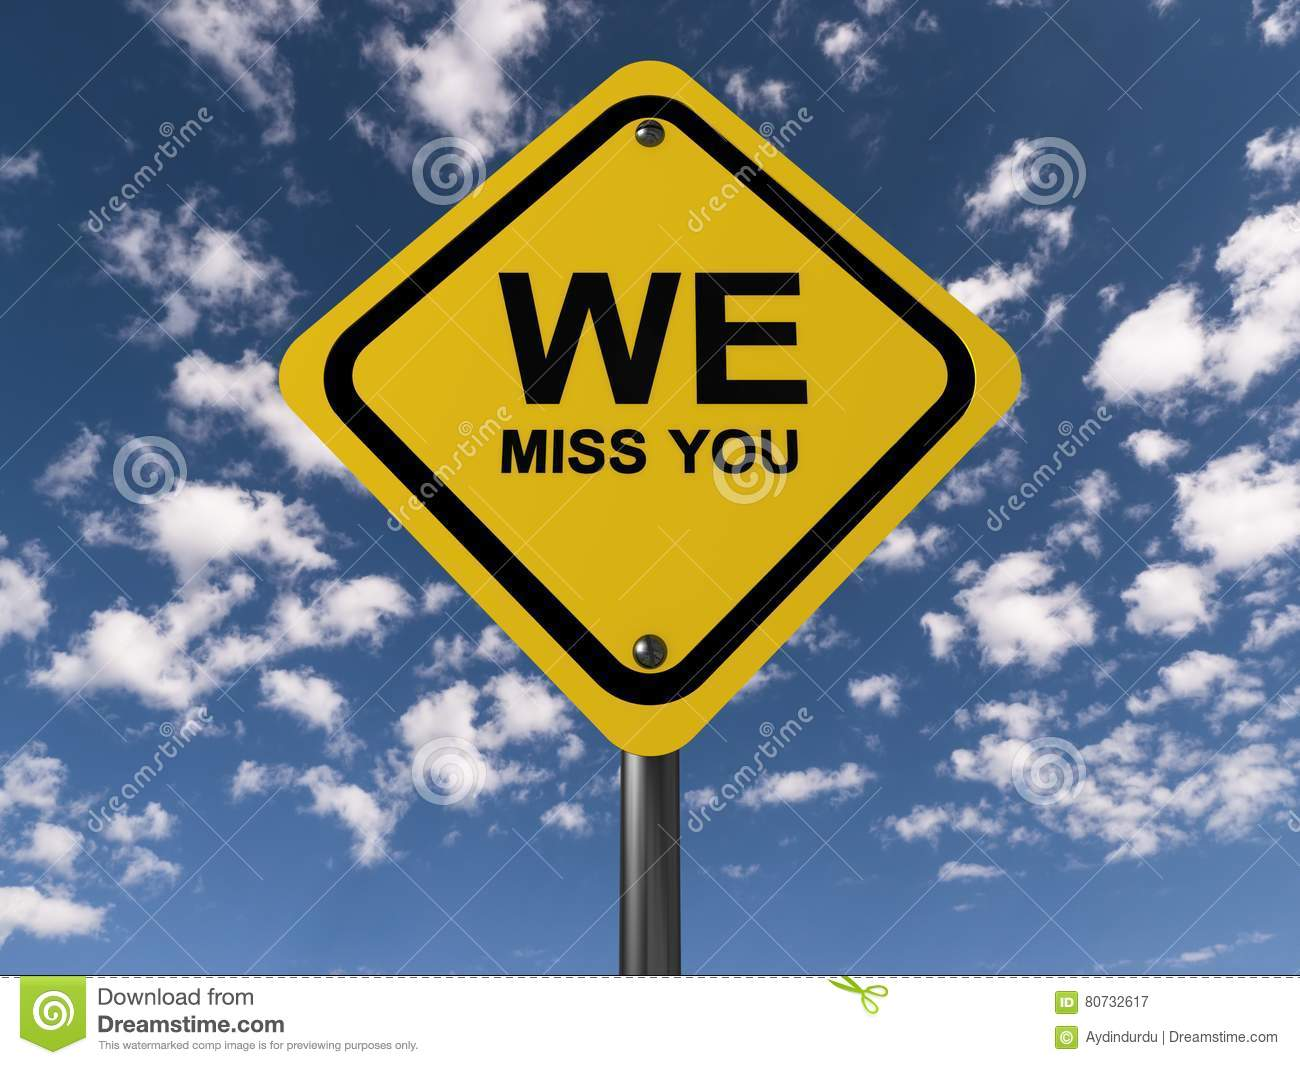 We miss you sign